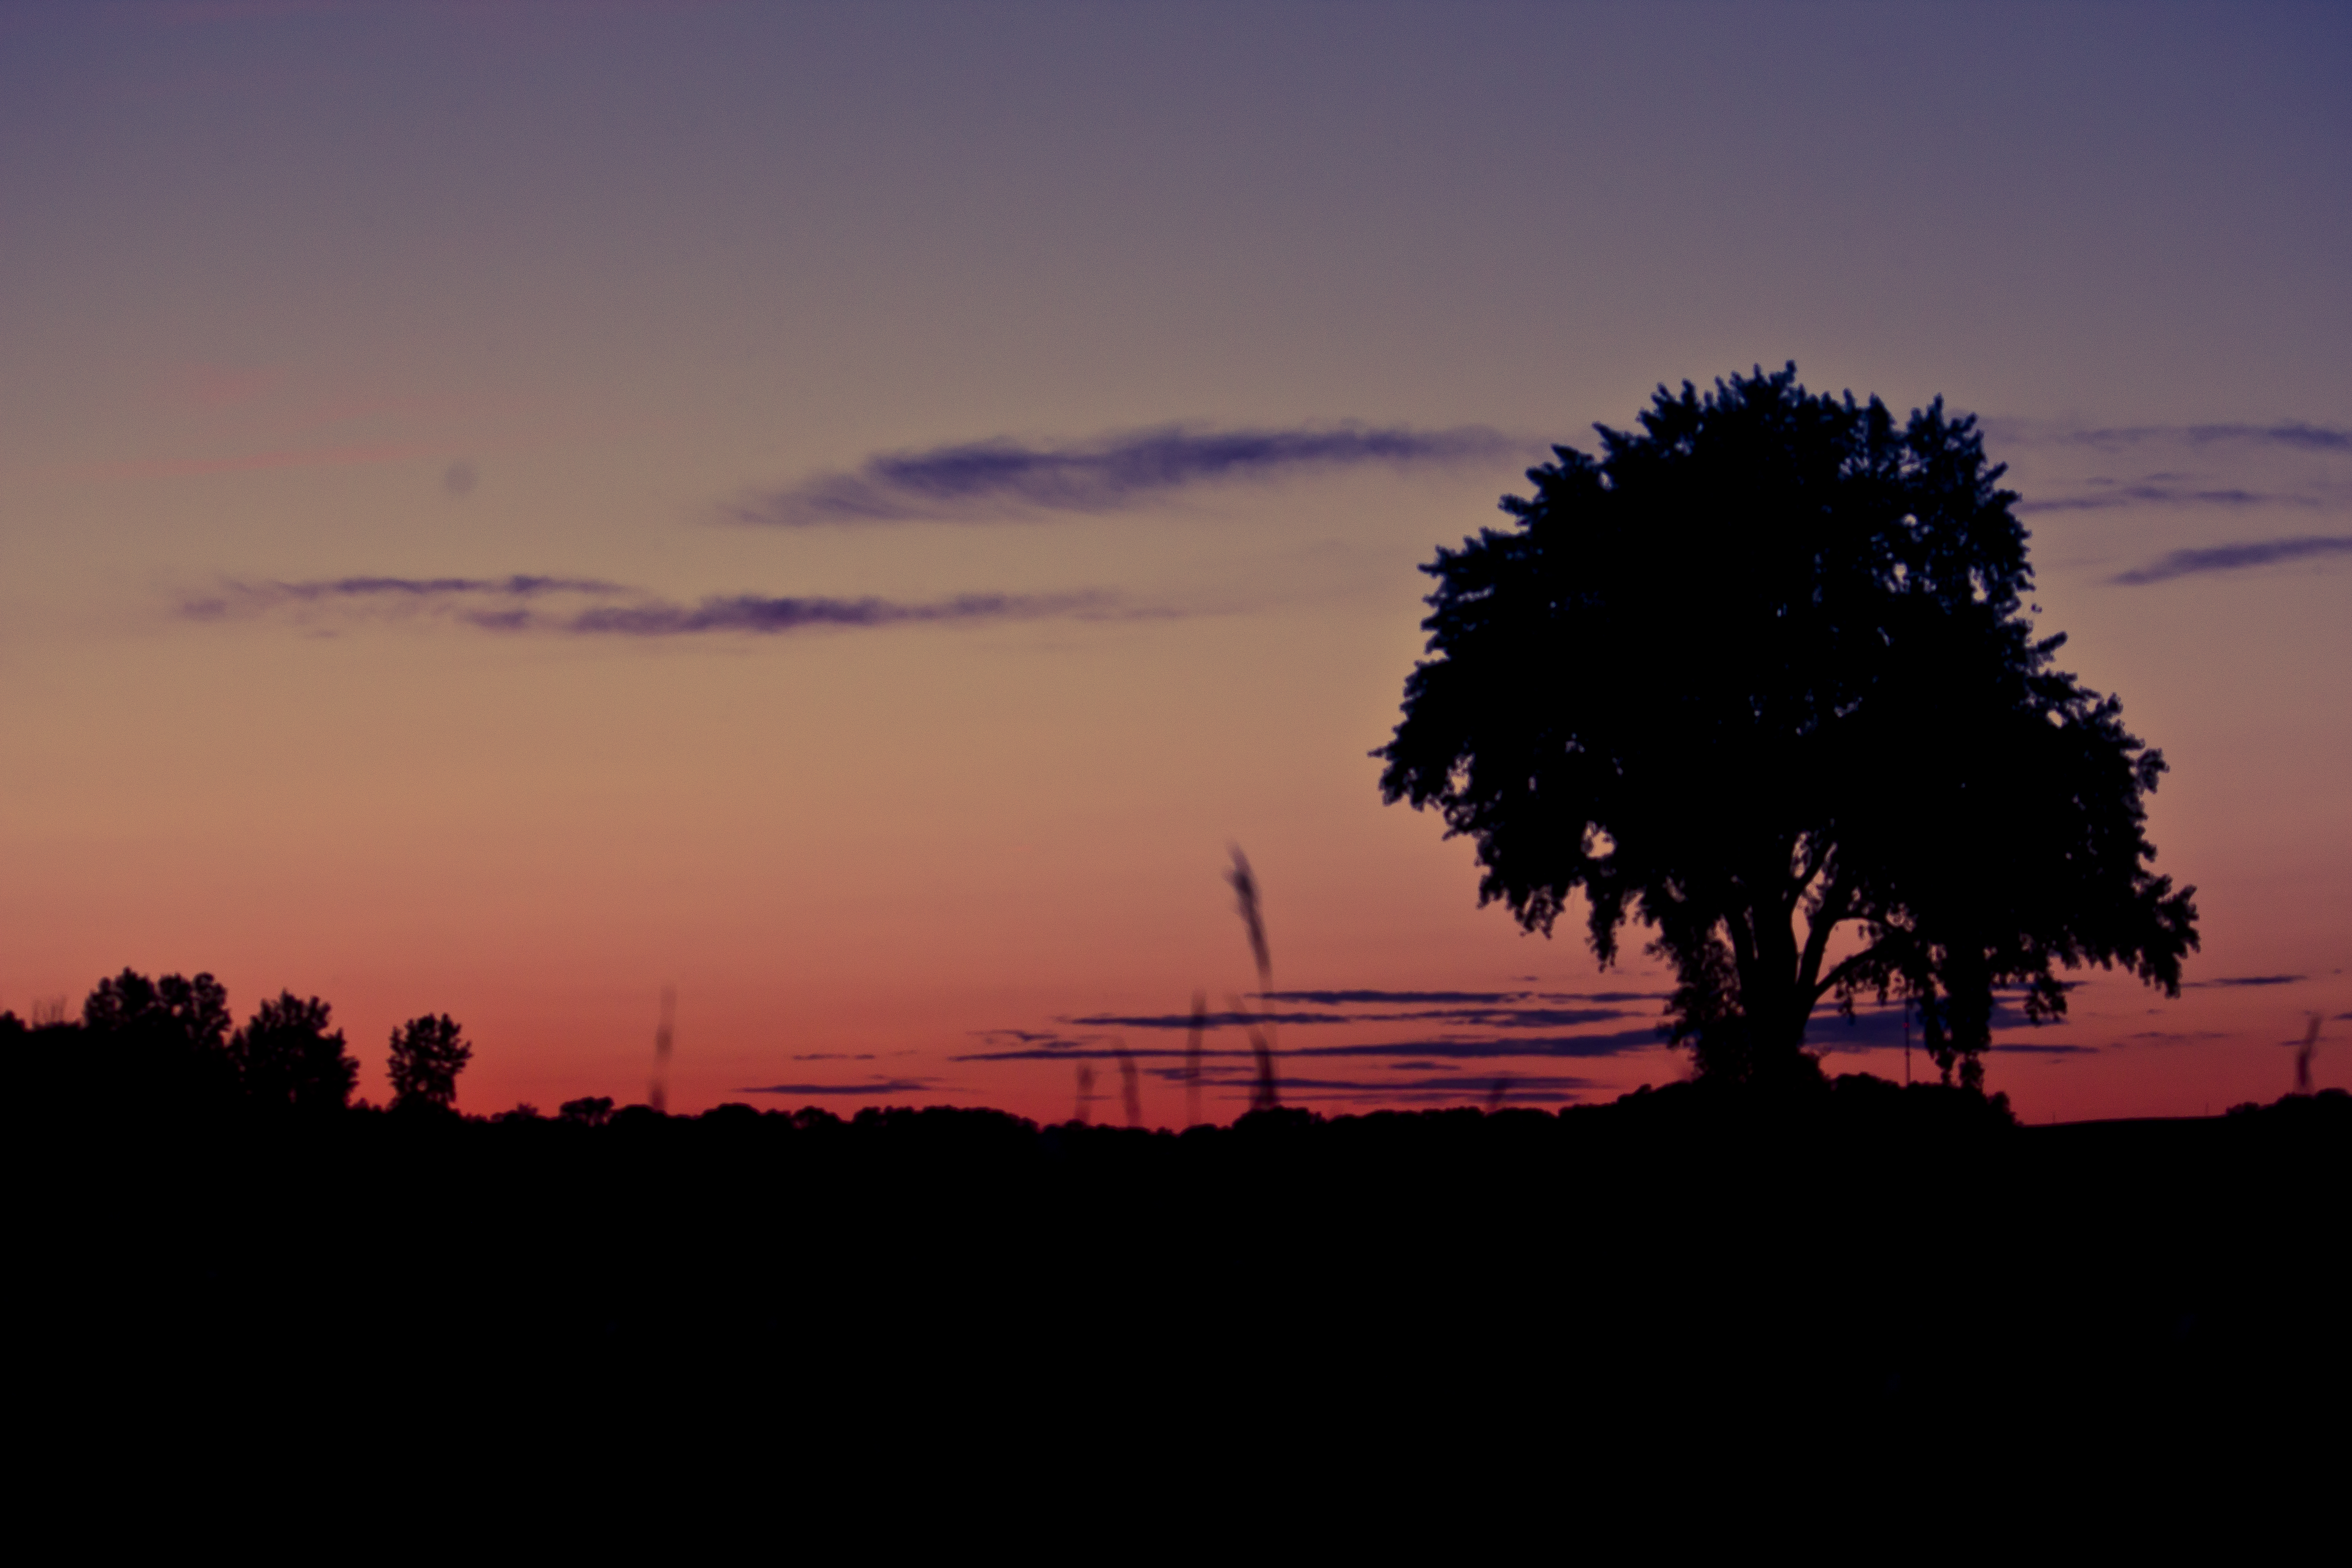 Tree Silhouette At Sunset By Archangelical Stock